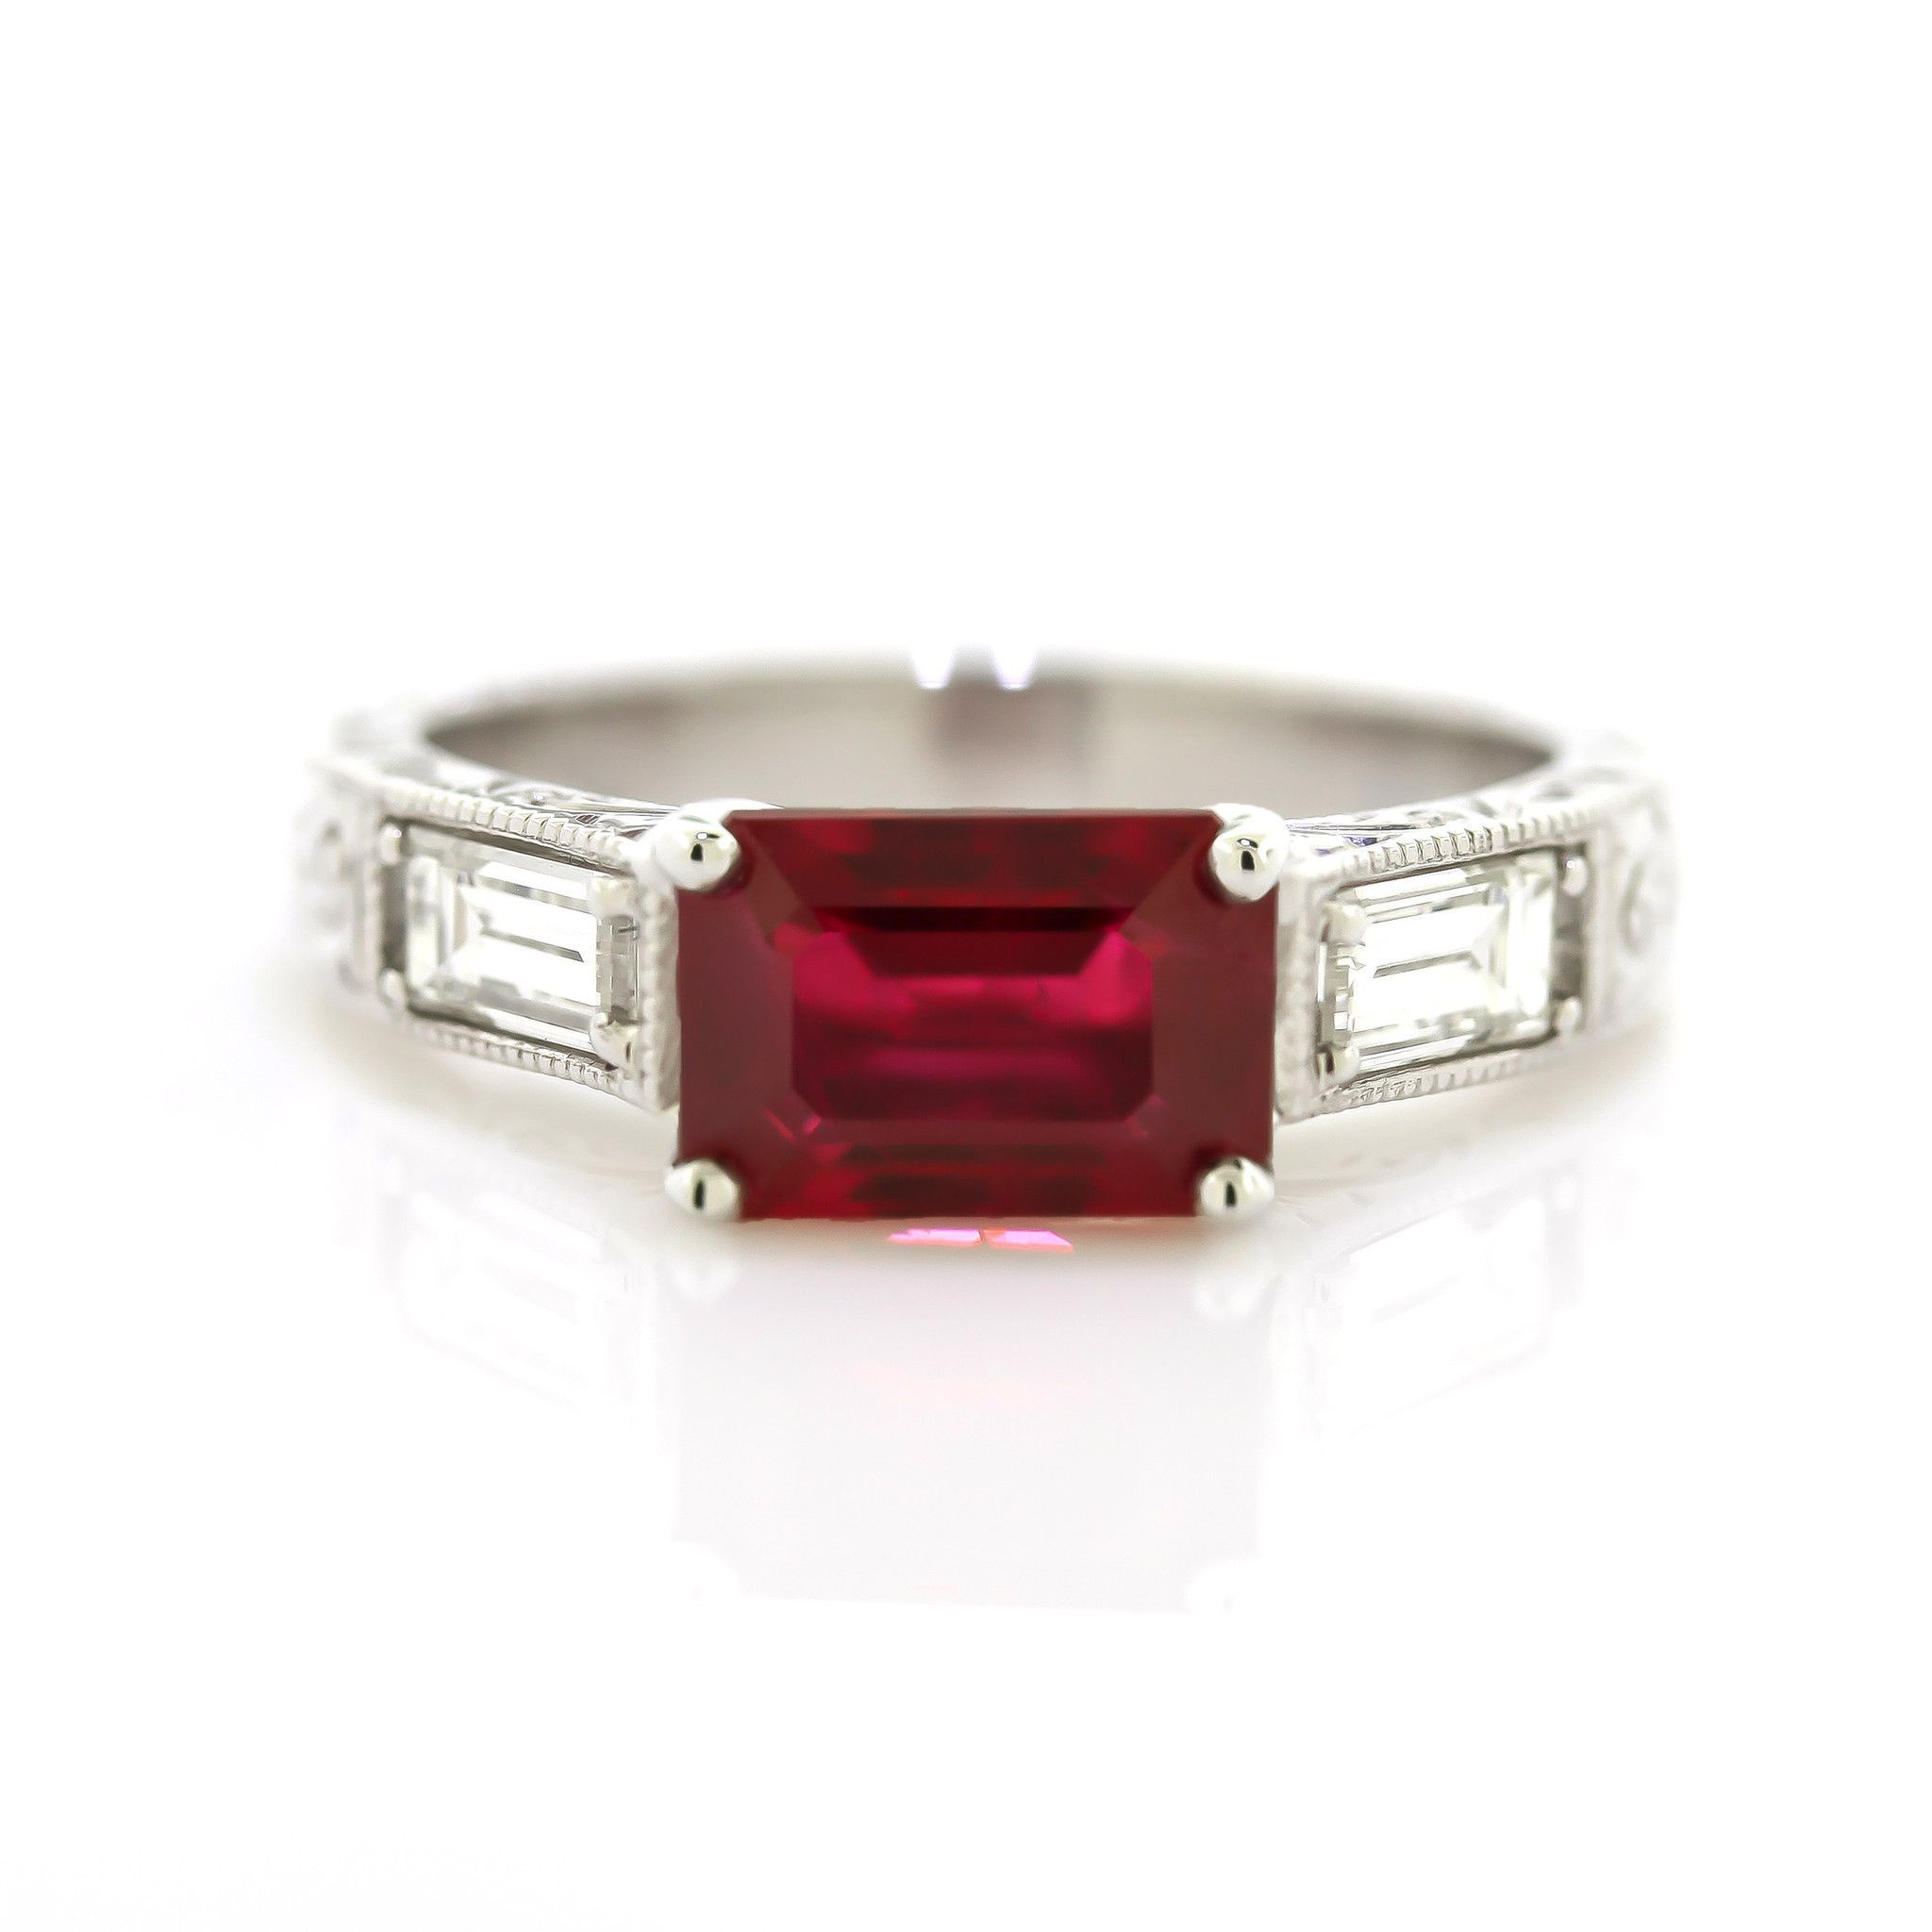 and priv jewelry product ring prive diamond omi ruby stone platinum